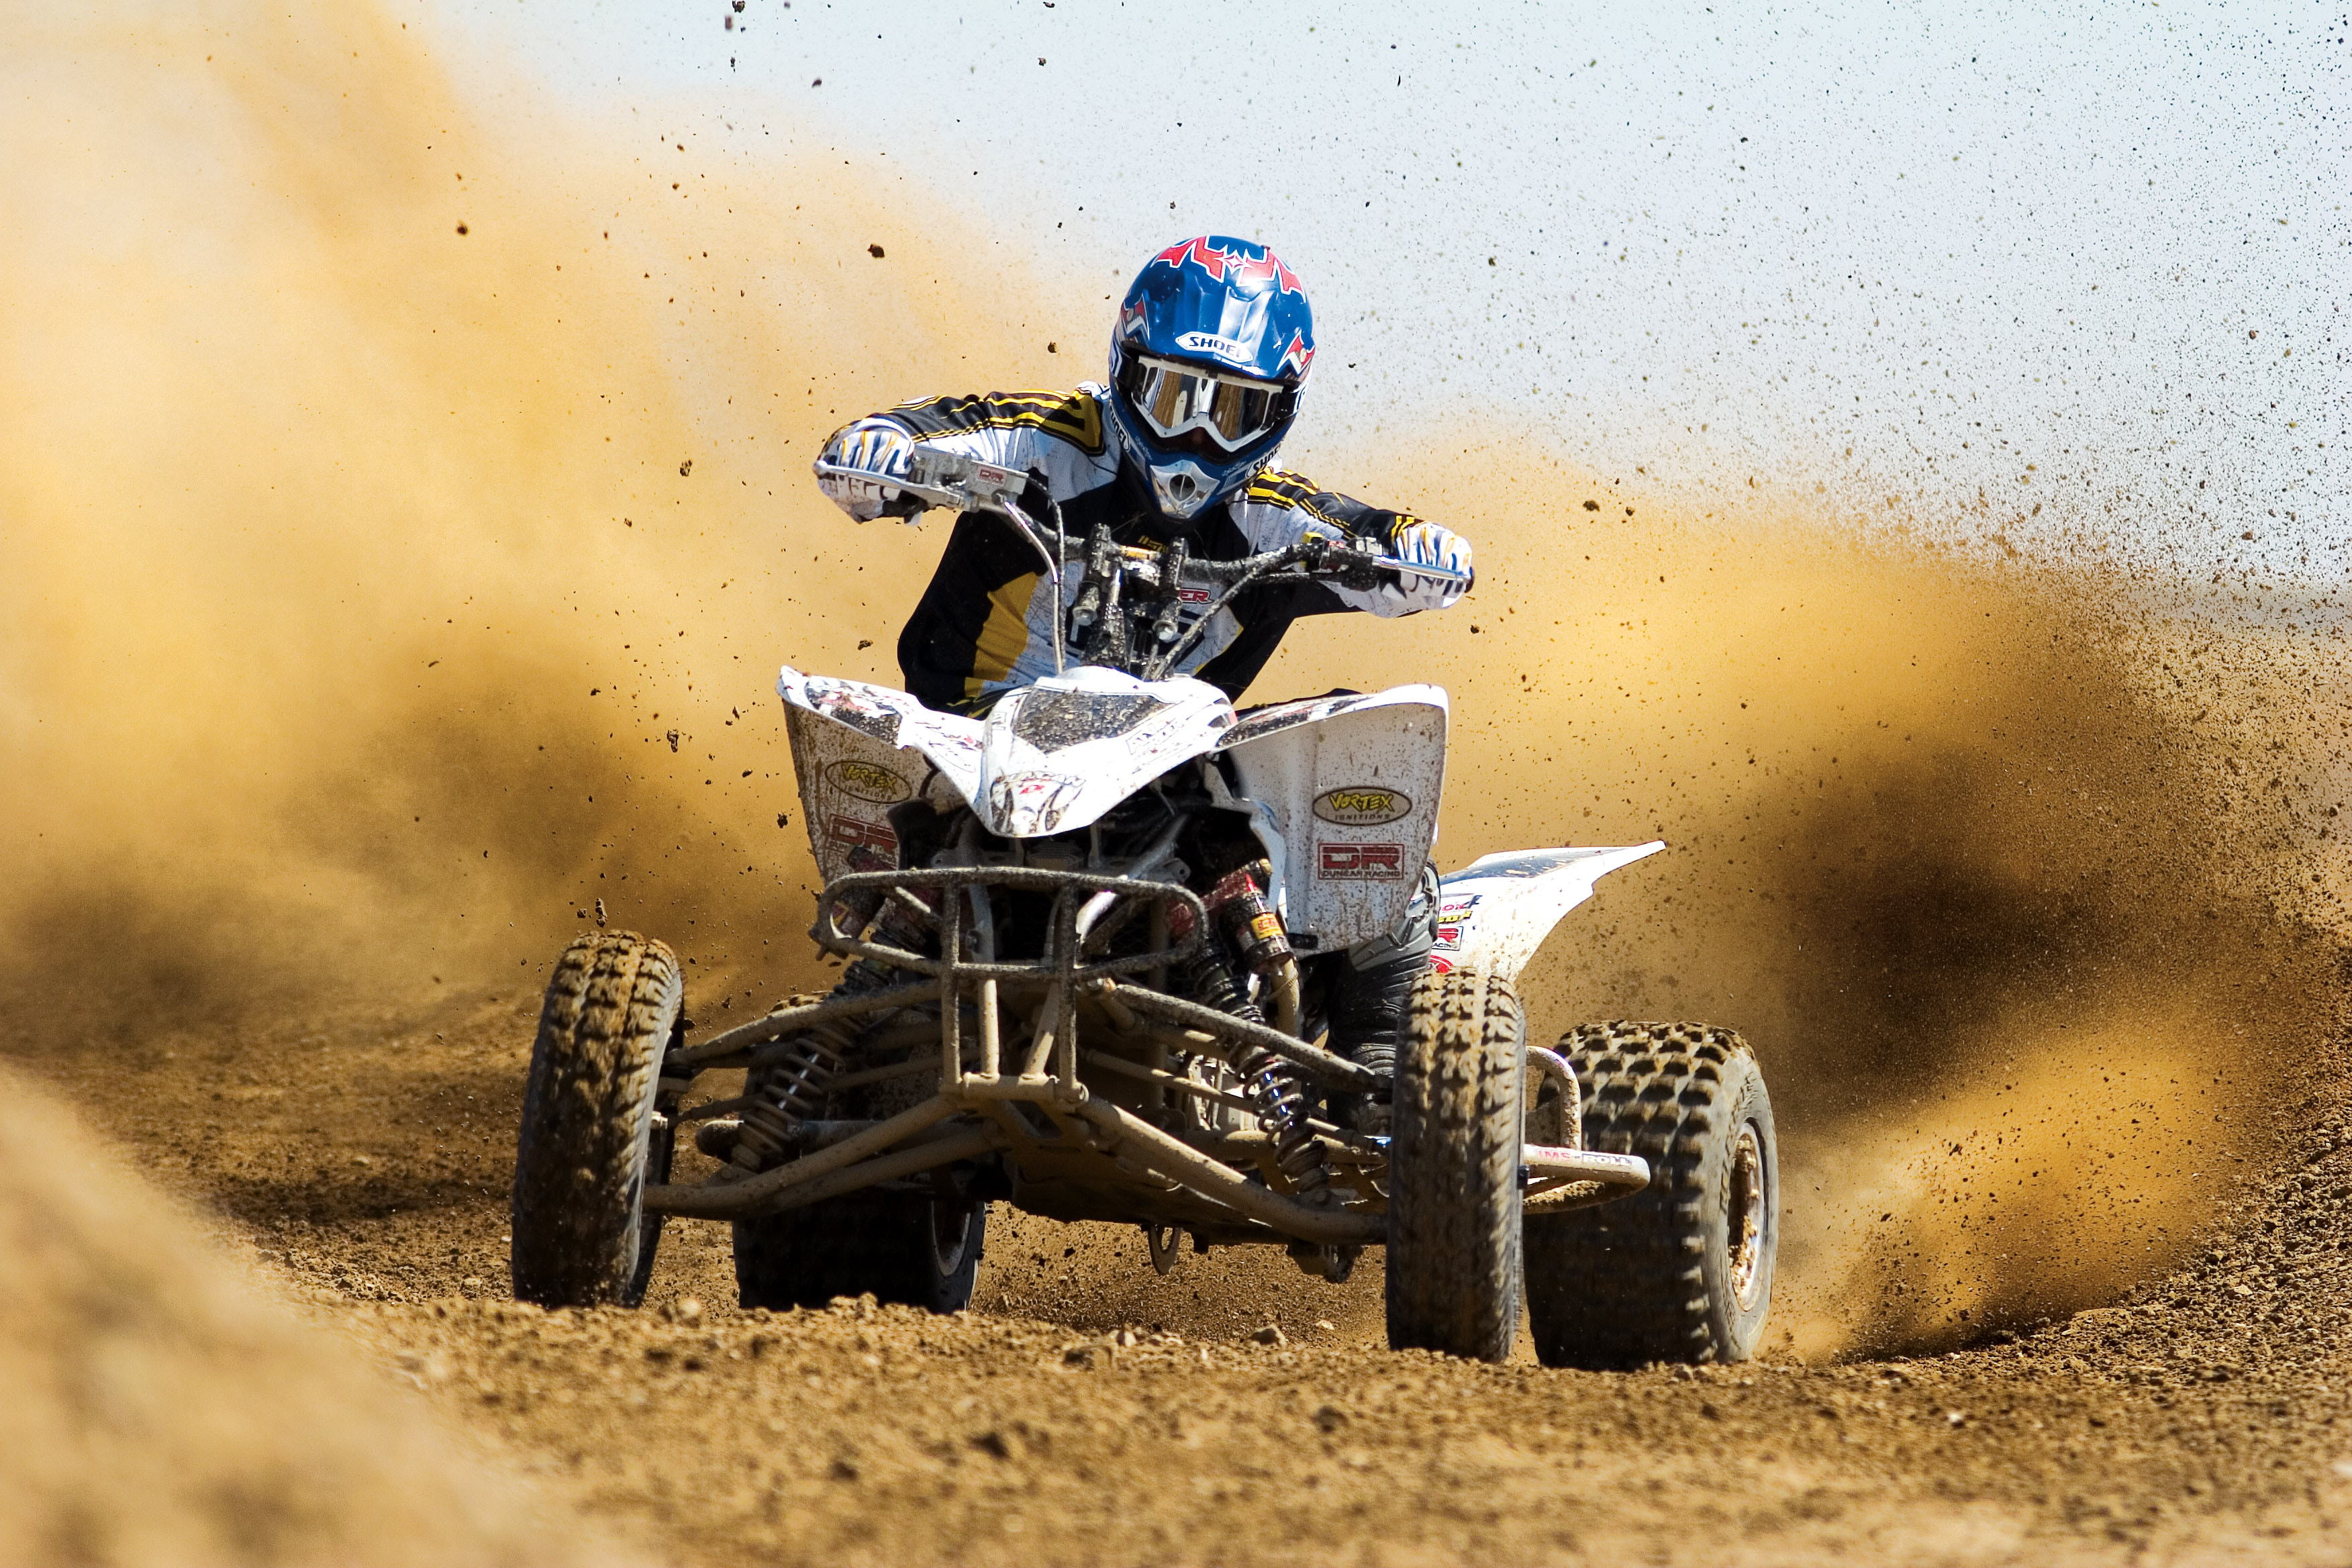 Photo of a quad racer in the sand